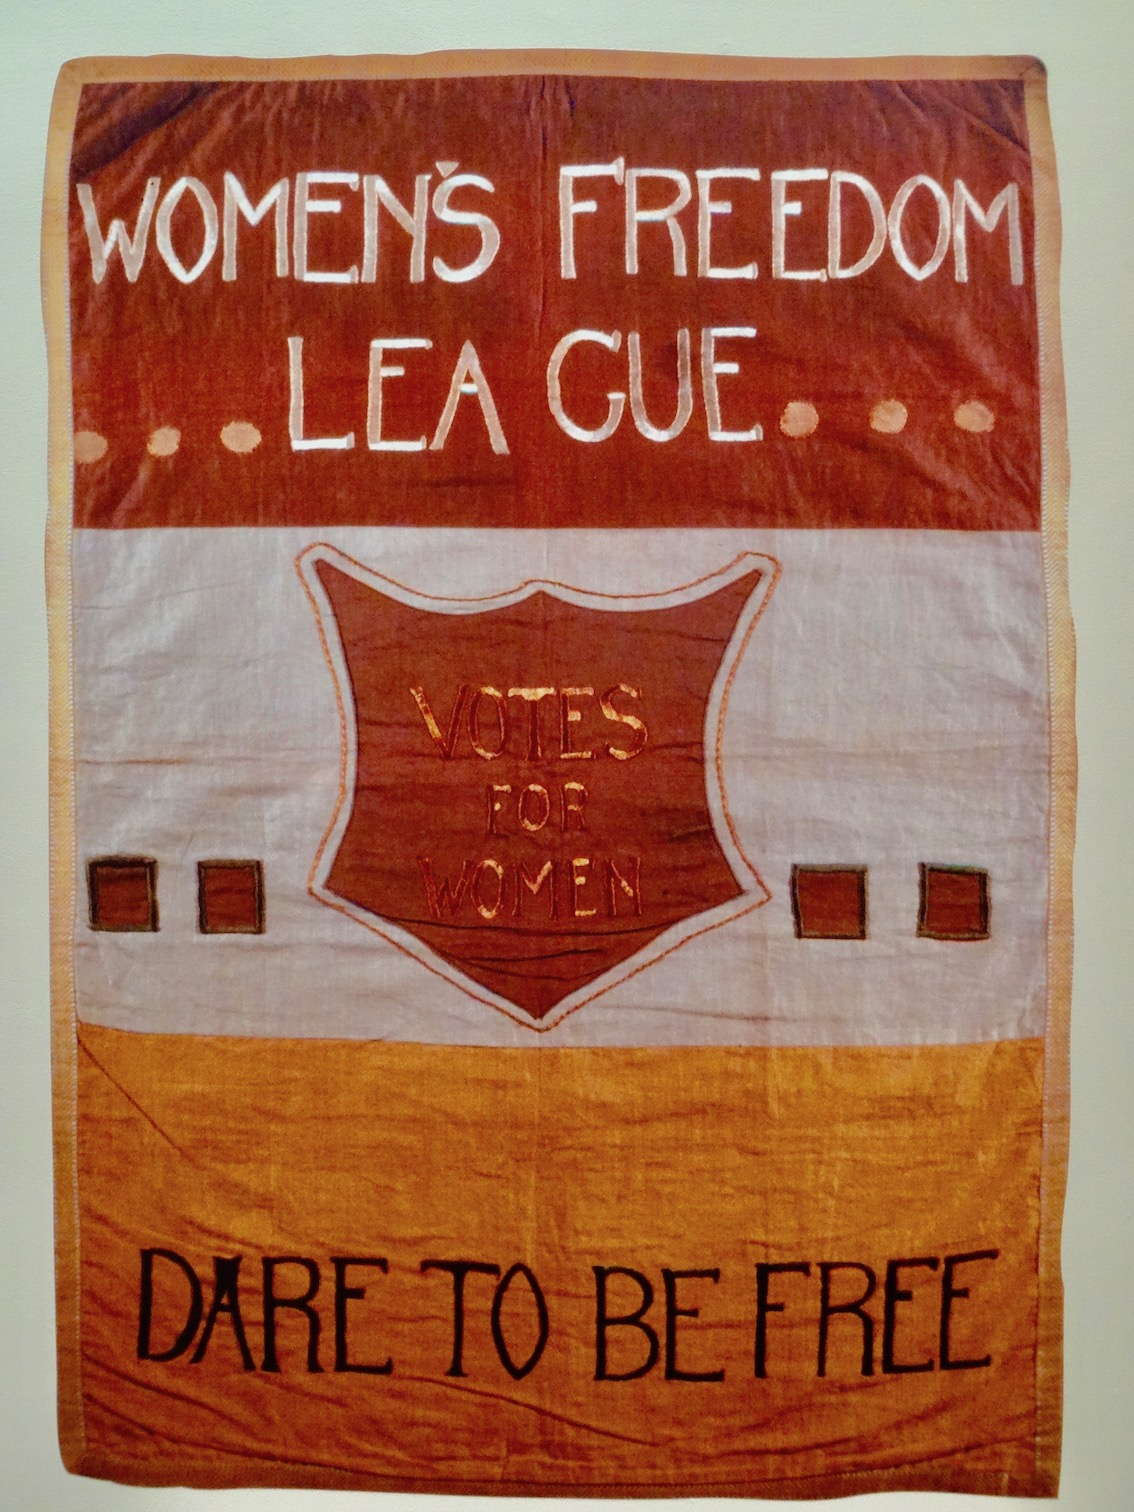 Women's Freedom League Dare to be Free Firstsite Colchester.